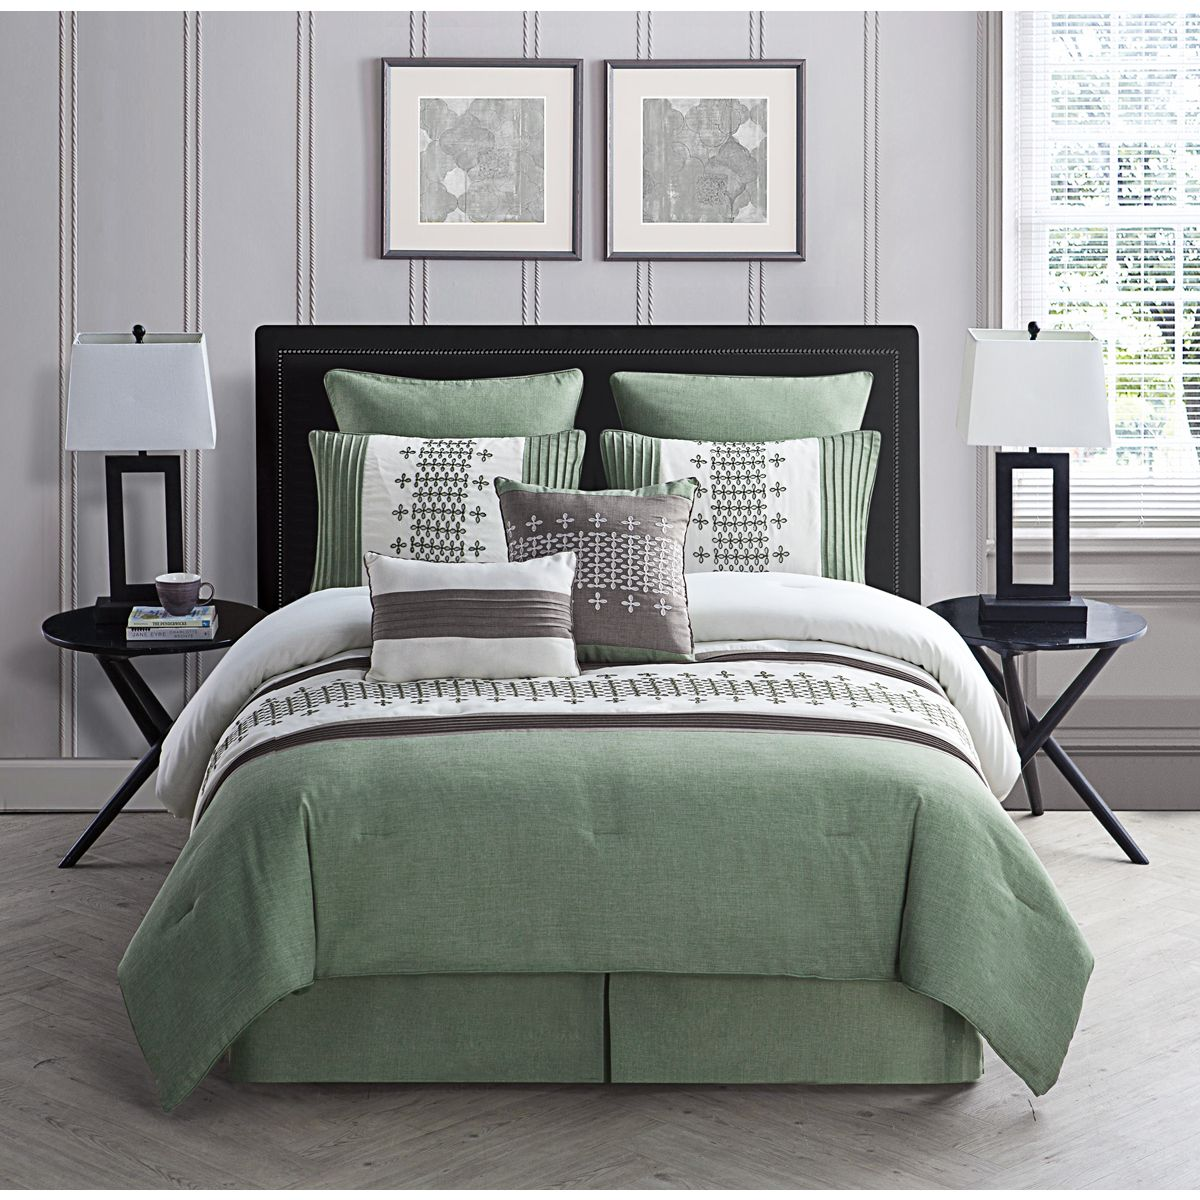 This Organic And Earthy Toned Comforter Set Will Give Your Bedroom A Soothing And Contemporary